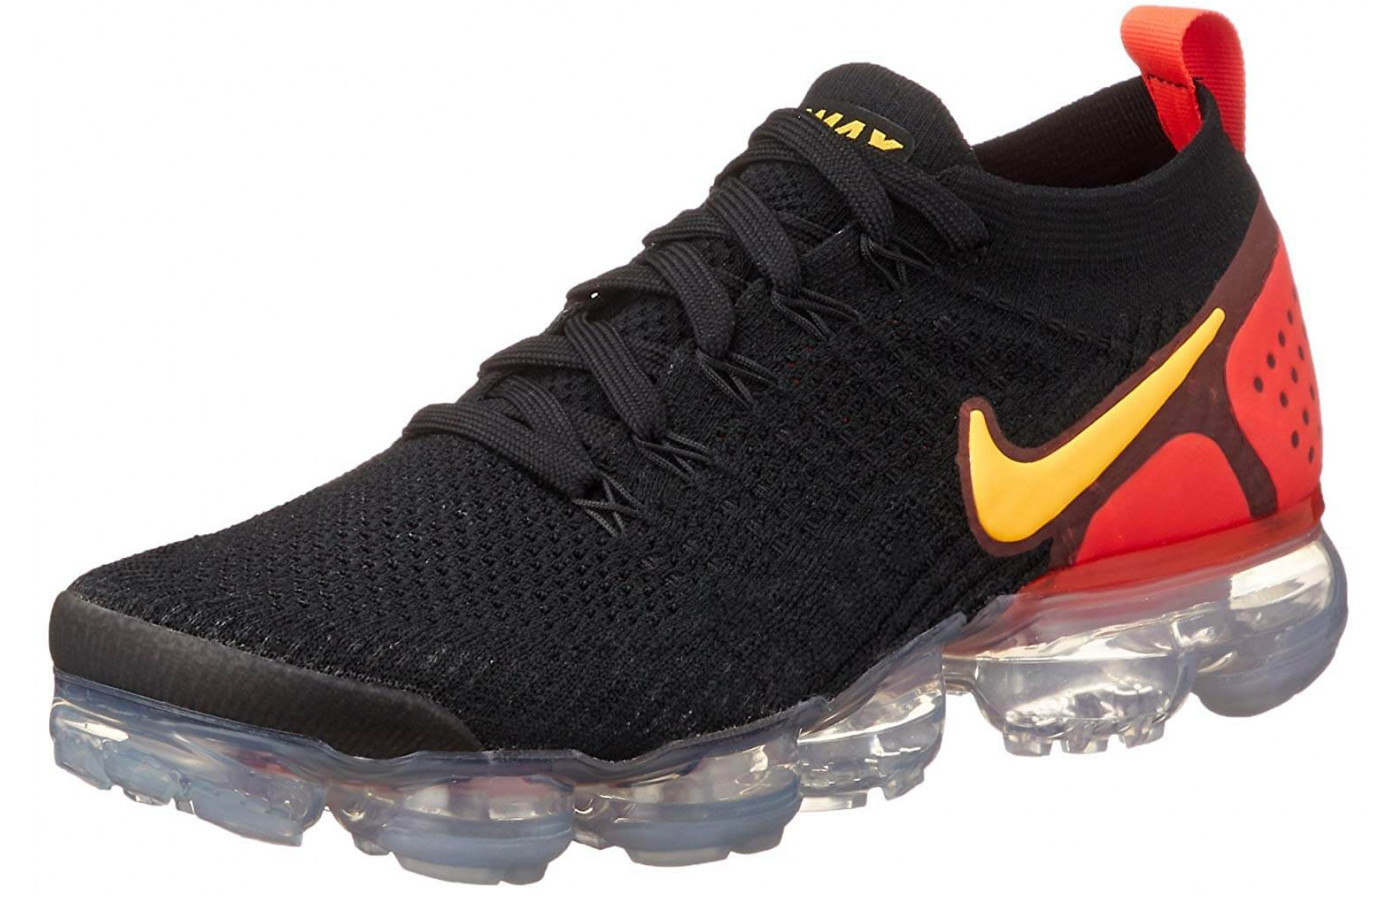 on sale b3282 05c70 Nike Air VaporMax Flyknit 2 - Buy or Not in June 2019?